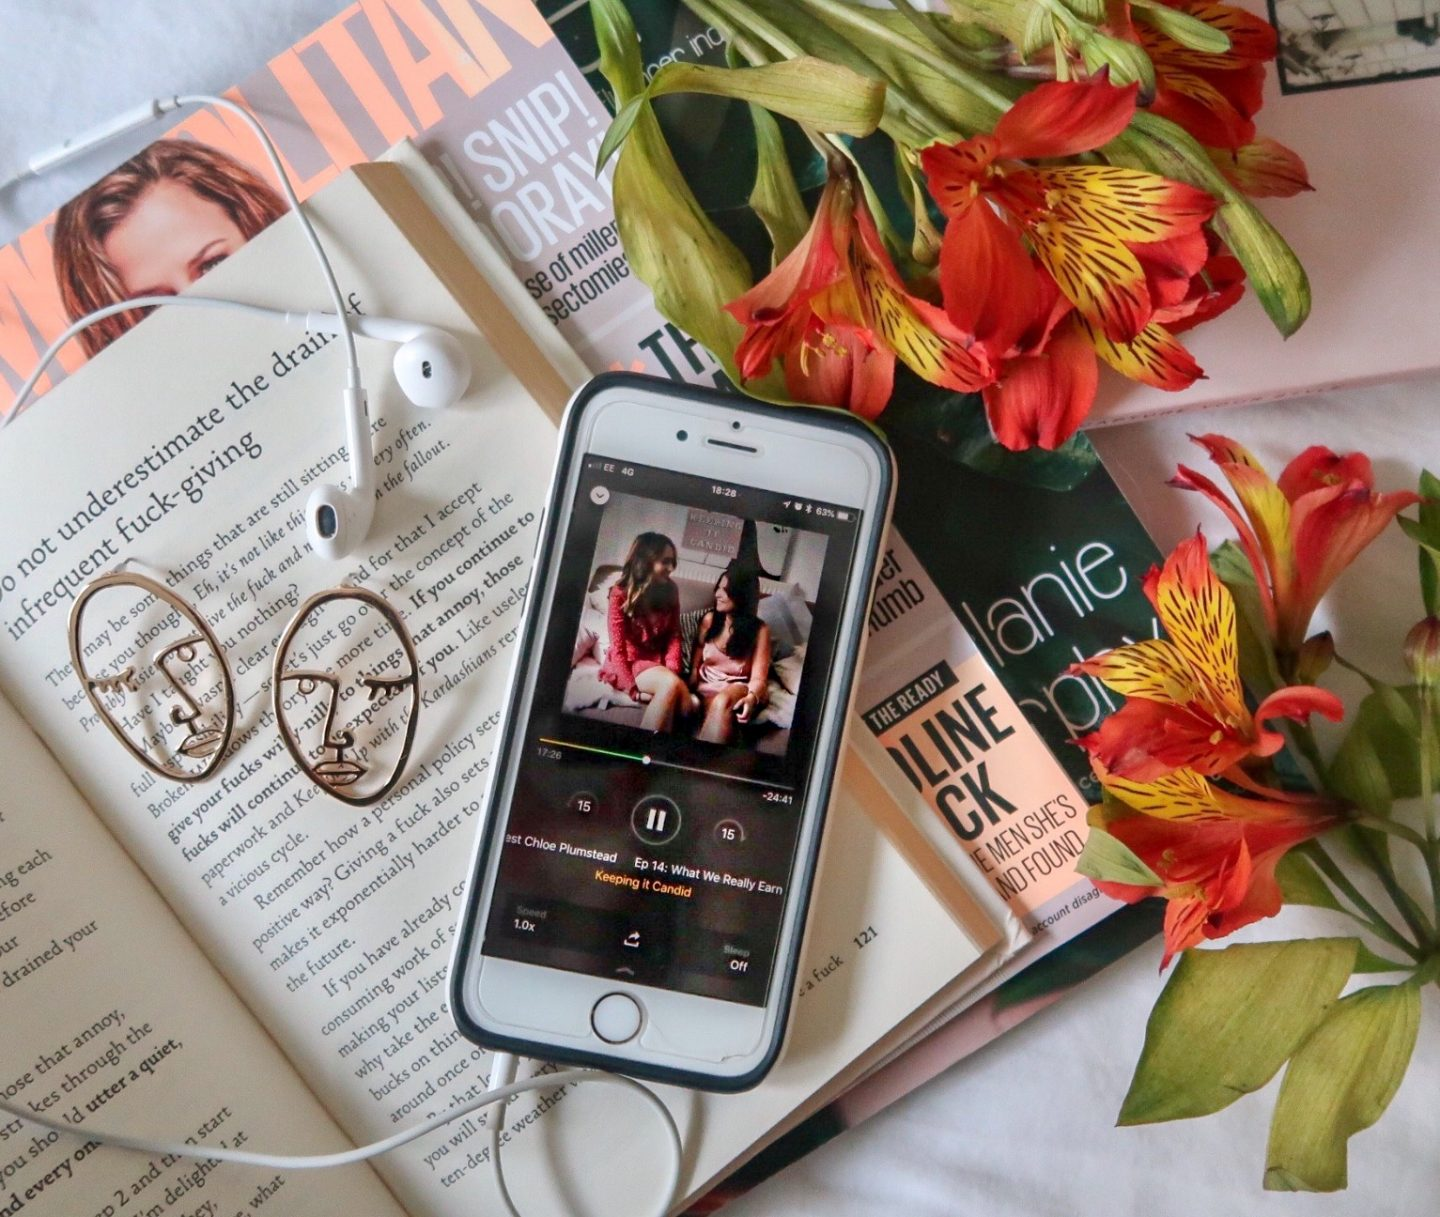 Blogging Podcasts I'm Loving And You Should Too